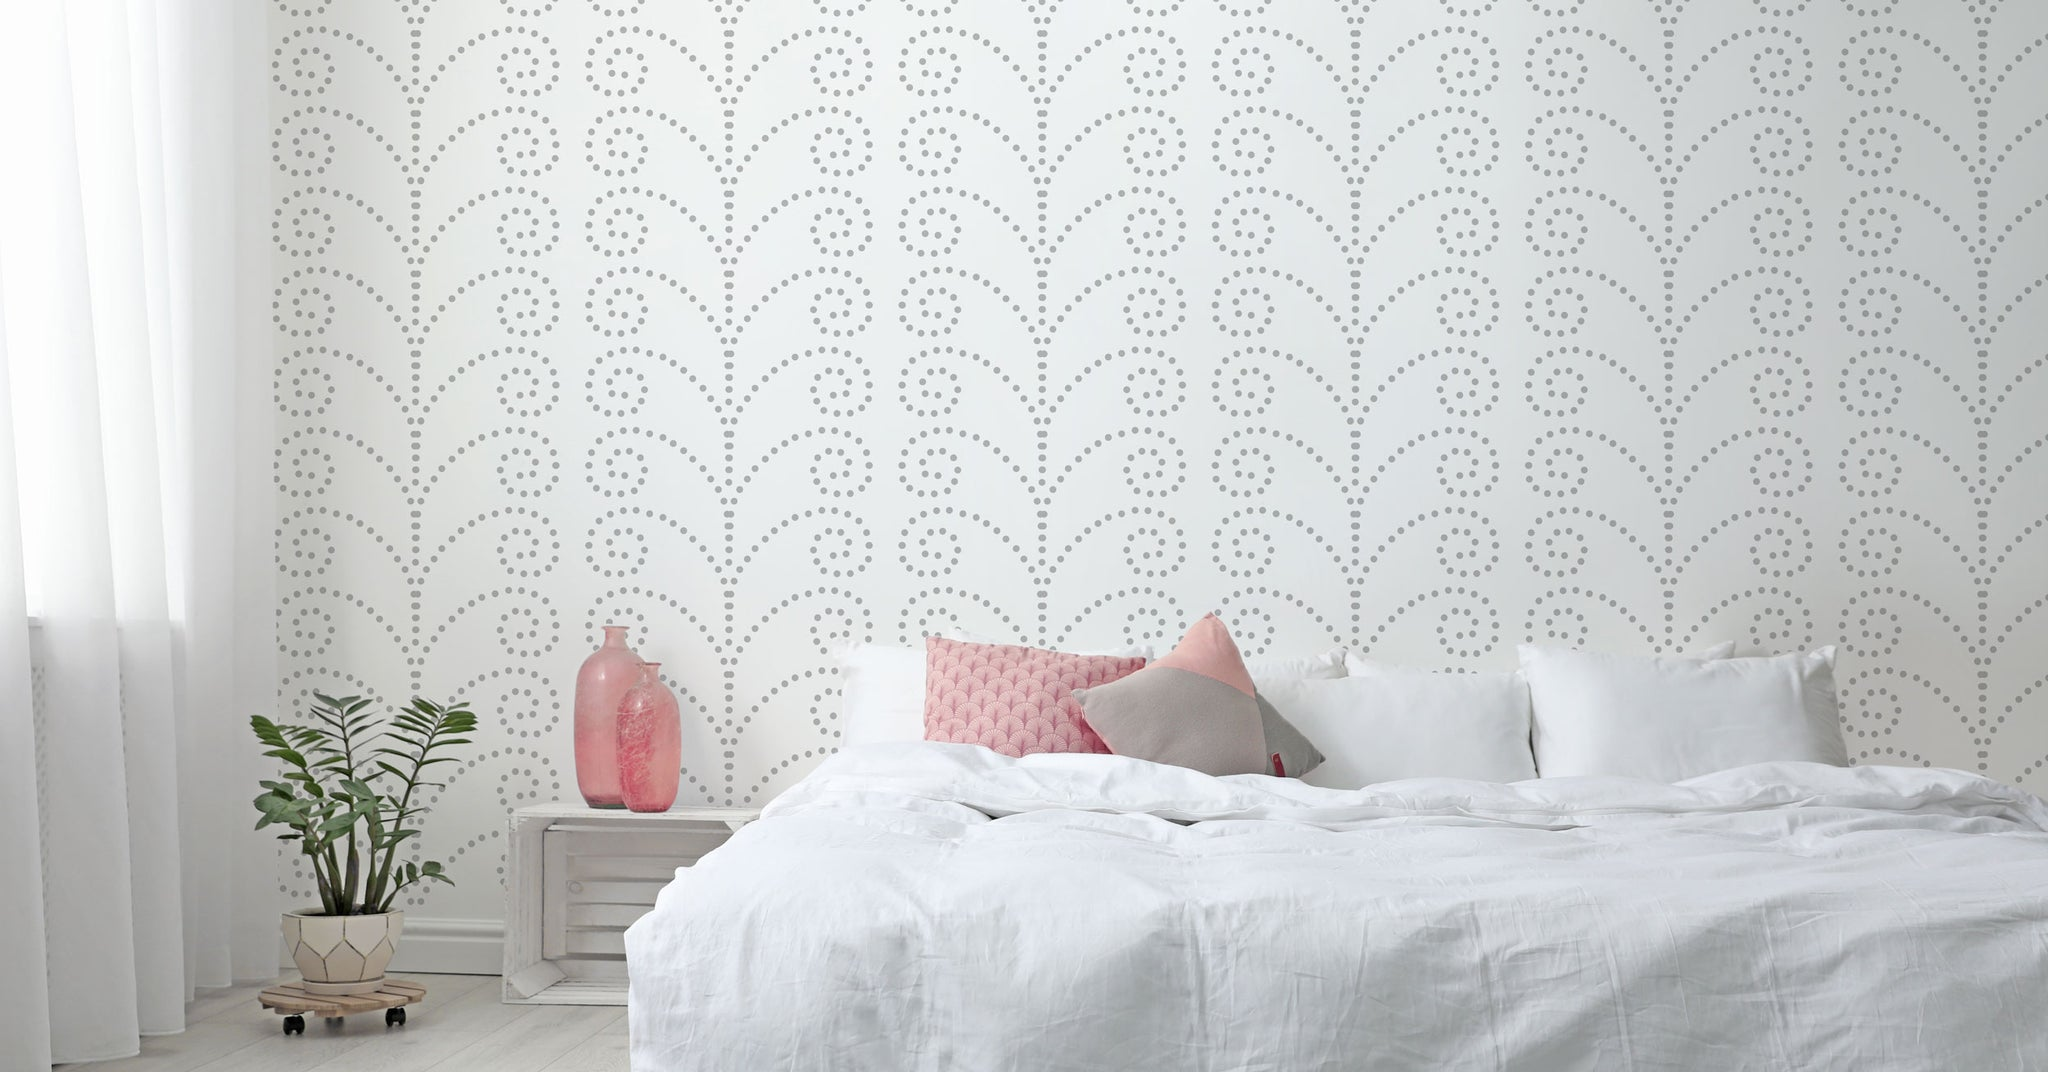 Dotty fern stencil, new stencil patterns for walls from The Stencil Studio Ltd